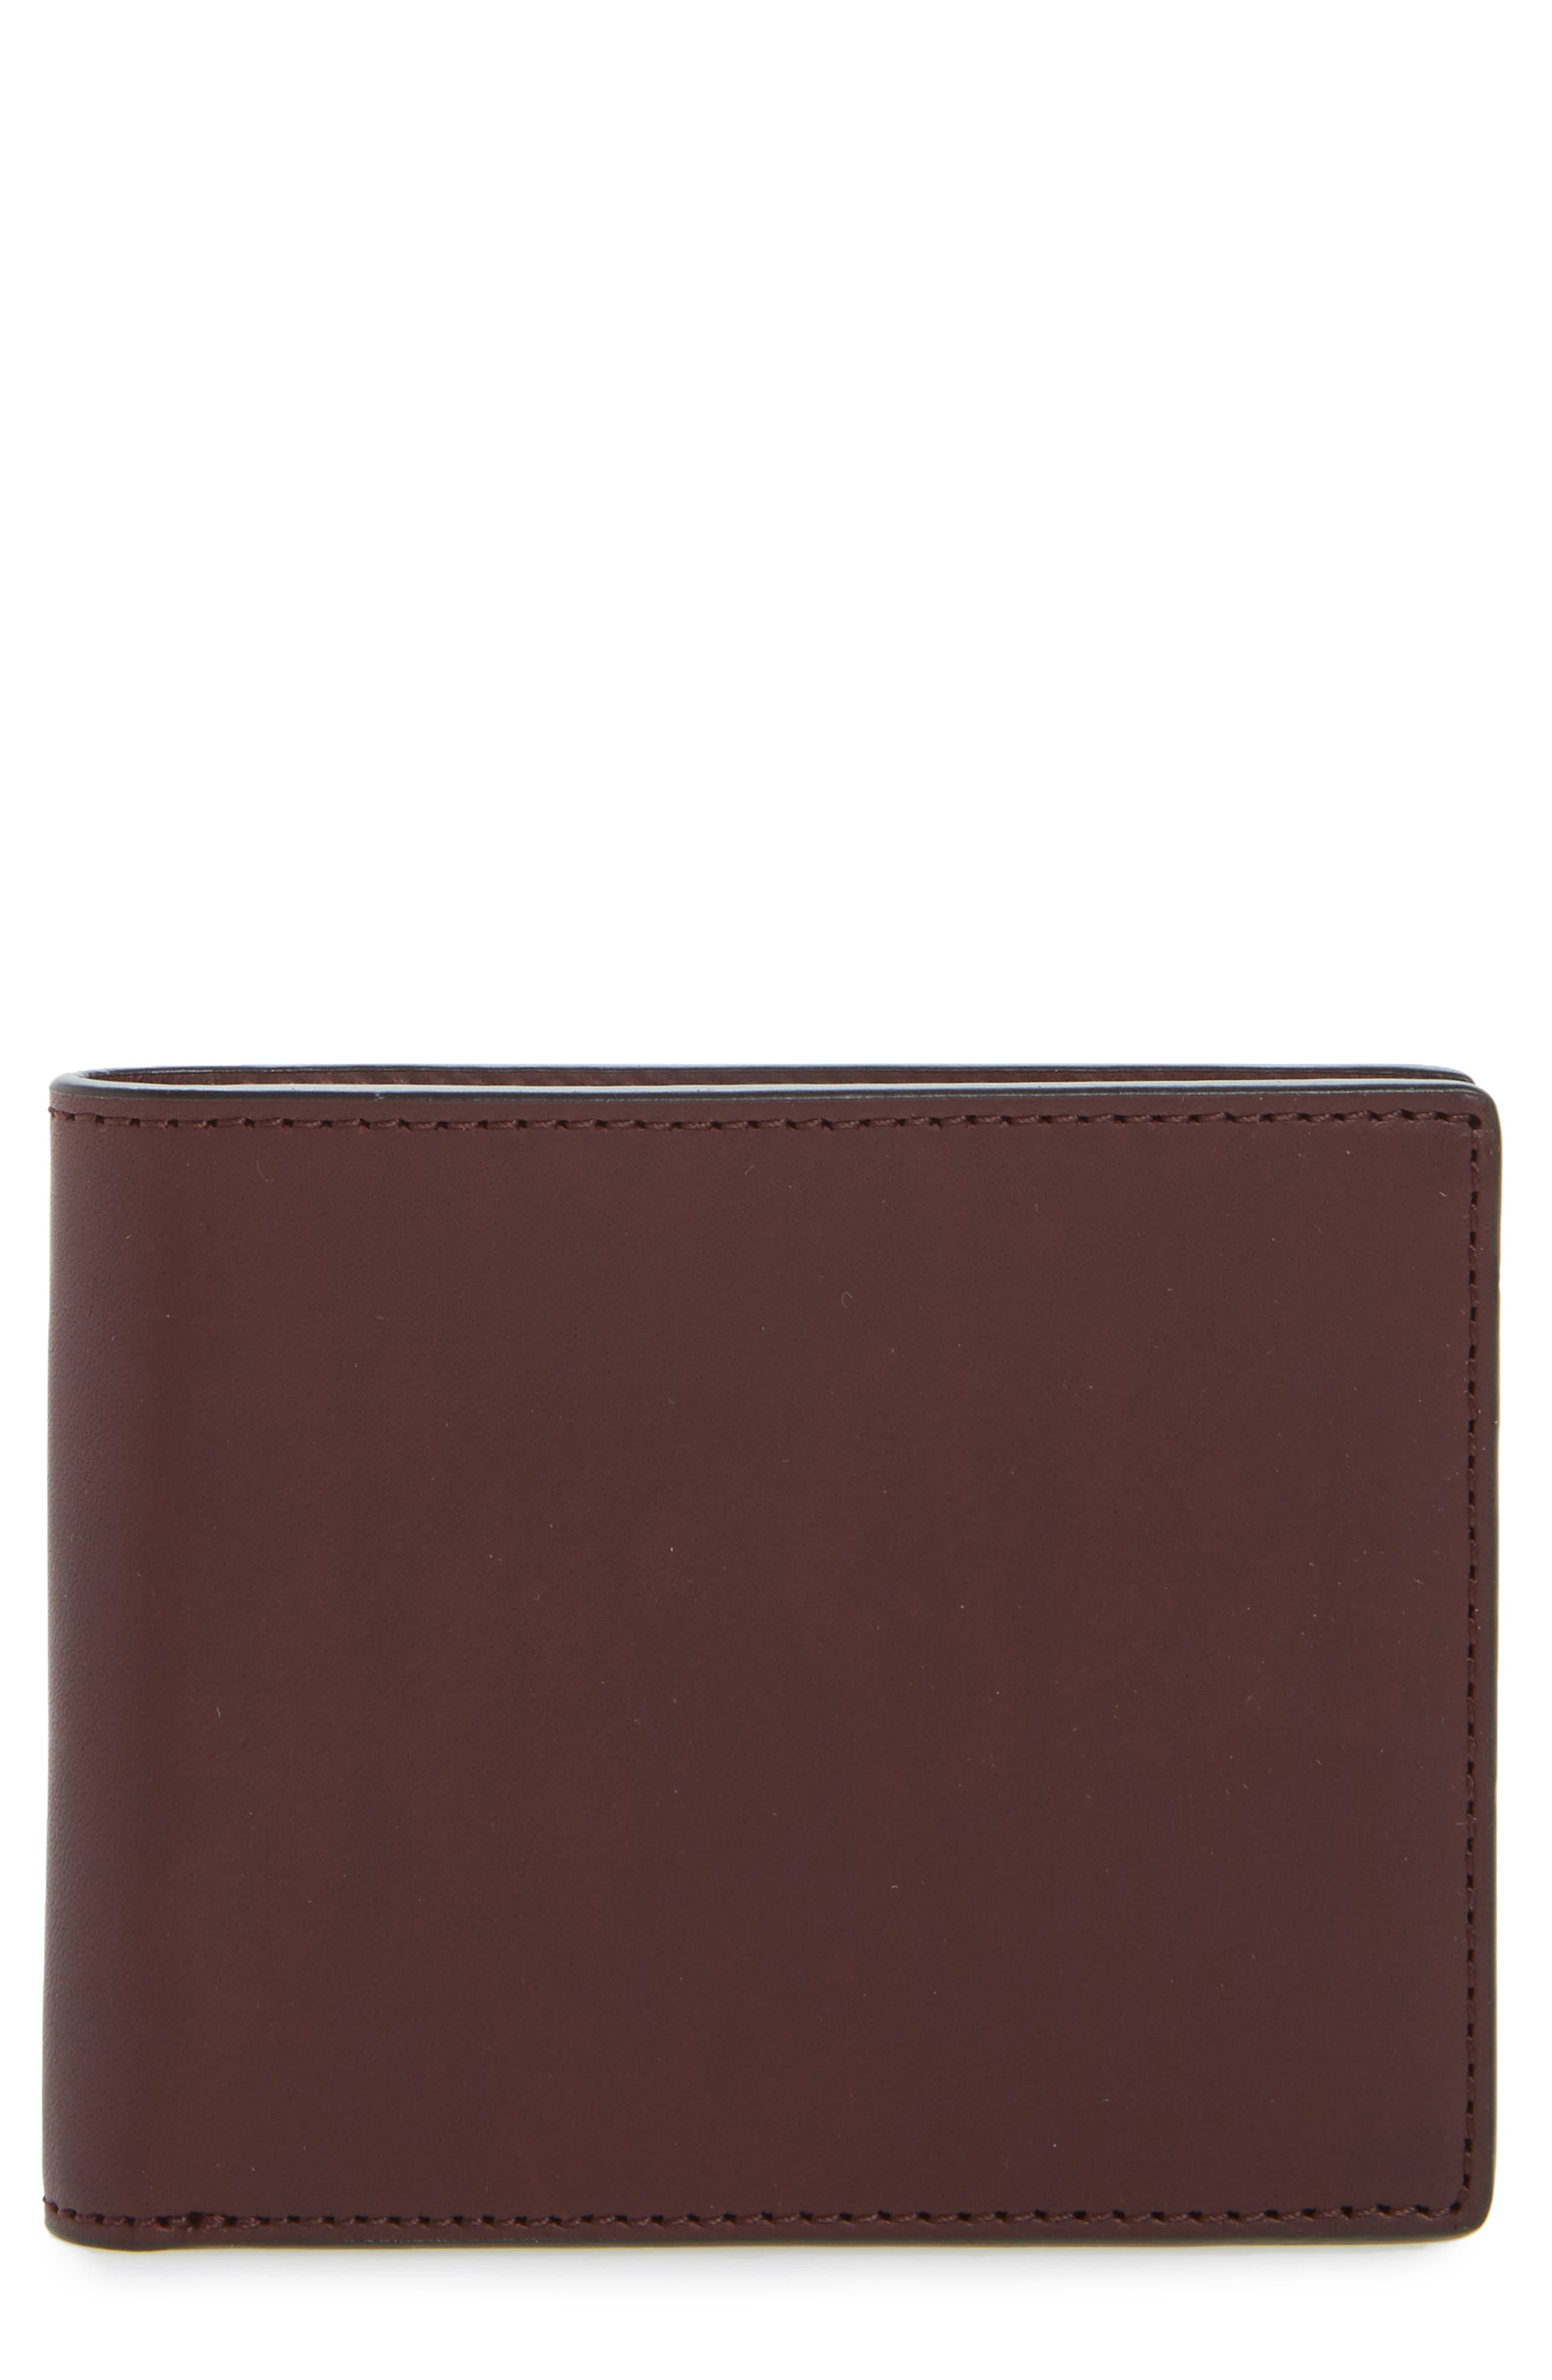 Hampshire Bifold Leather Wallet,                             Main thumbnail 1, color,                             998